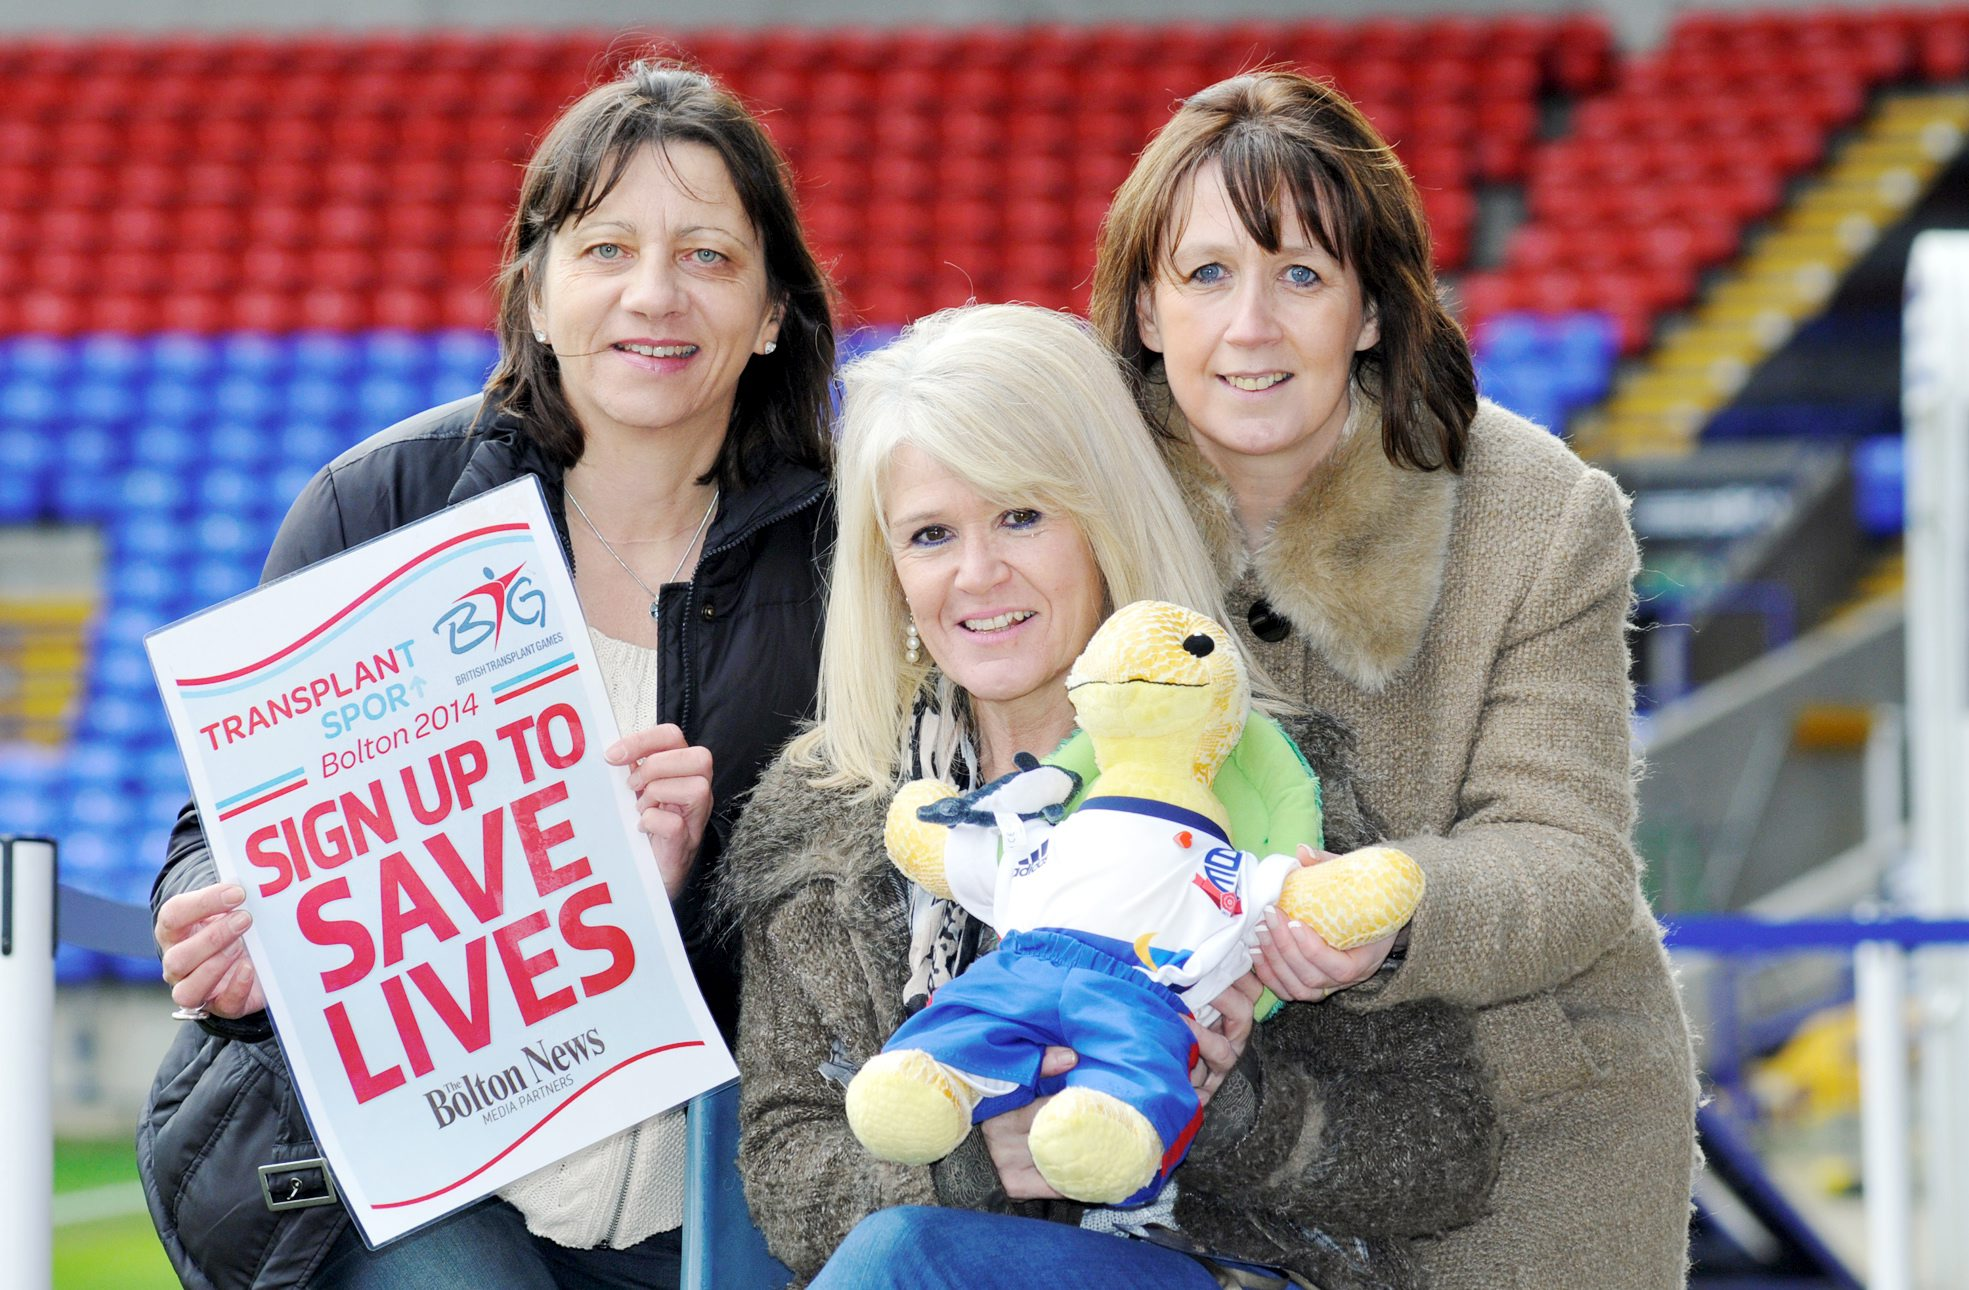 From left, Zoe Dixon, manager of Manchester Adults, Janice Taylor, team manager of Wythenshawe Adults and Denise Roberts, Manchester Children's Team manager